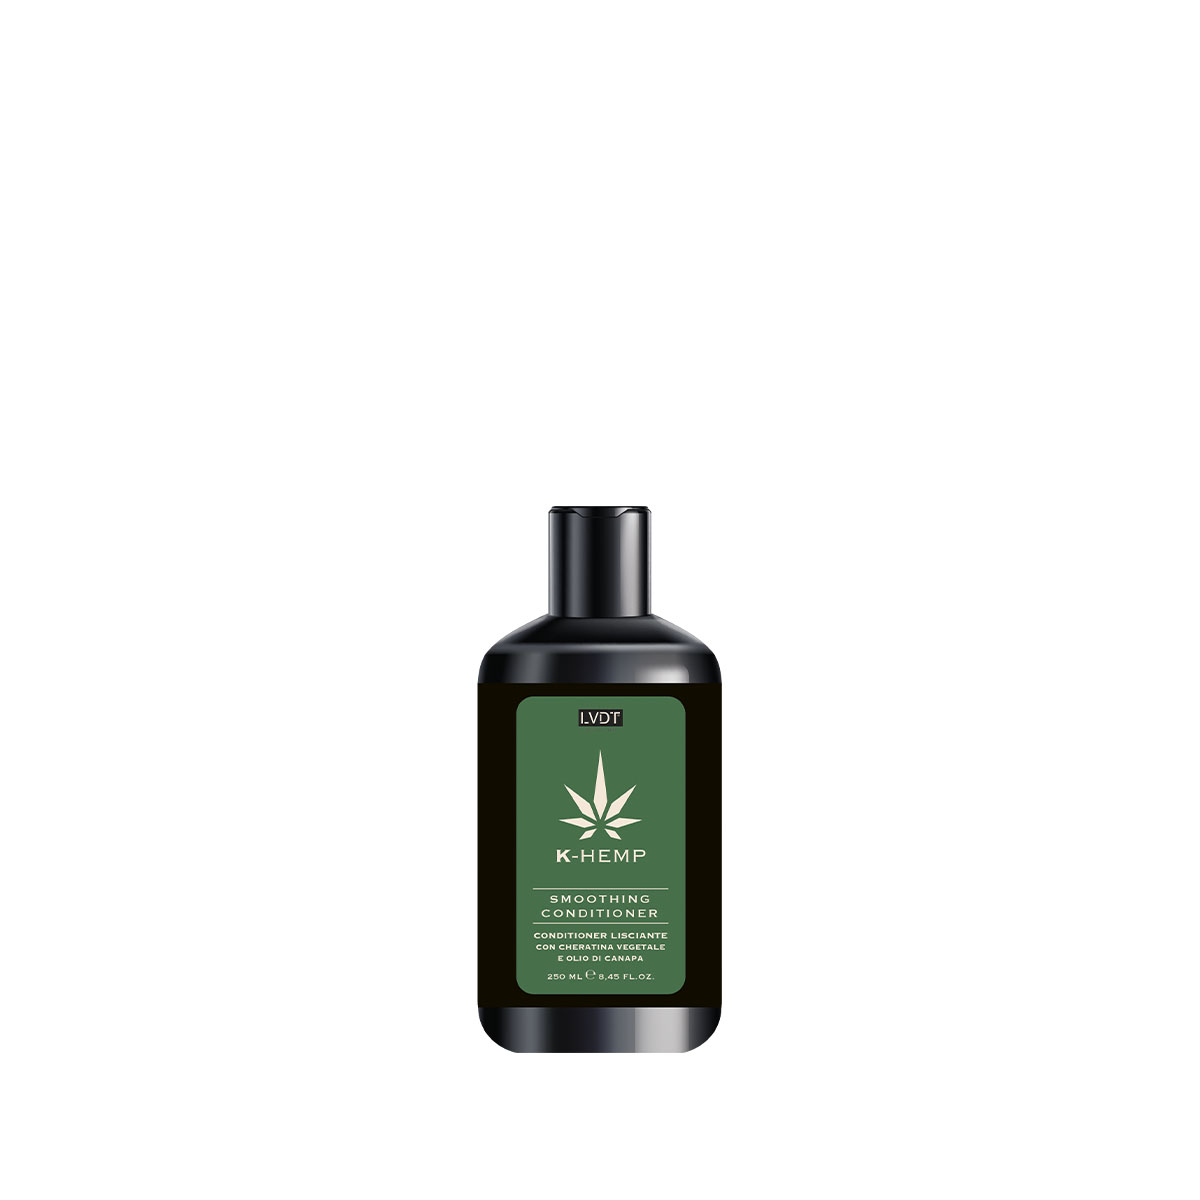 K-hemp Smoothing Conditioner 250ml